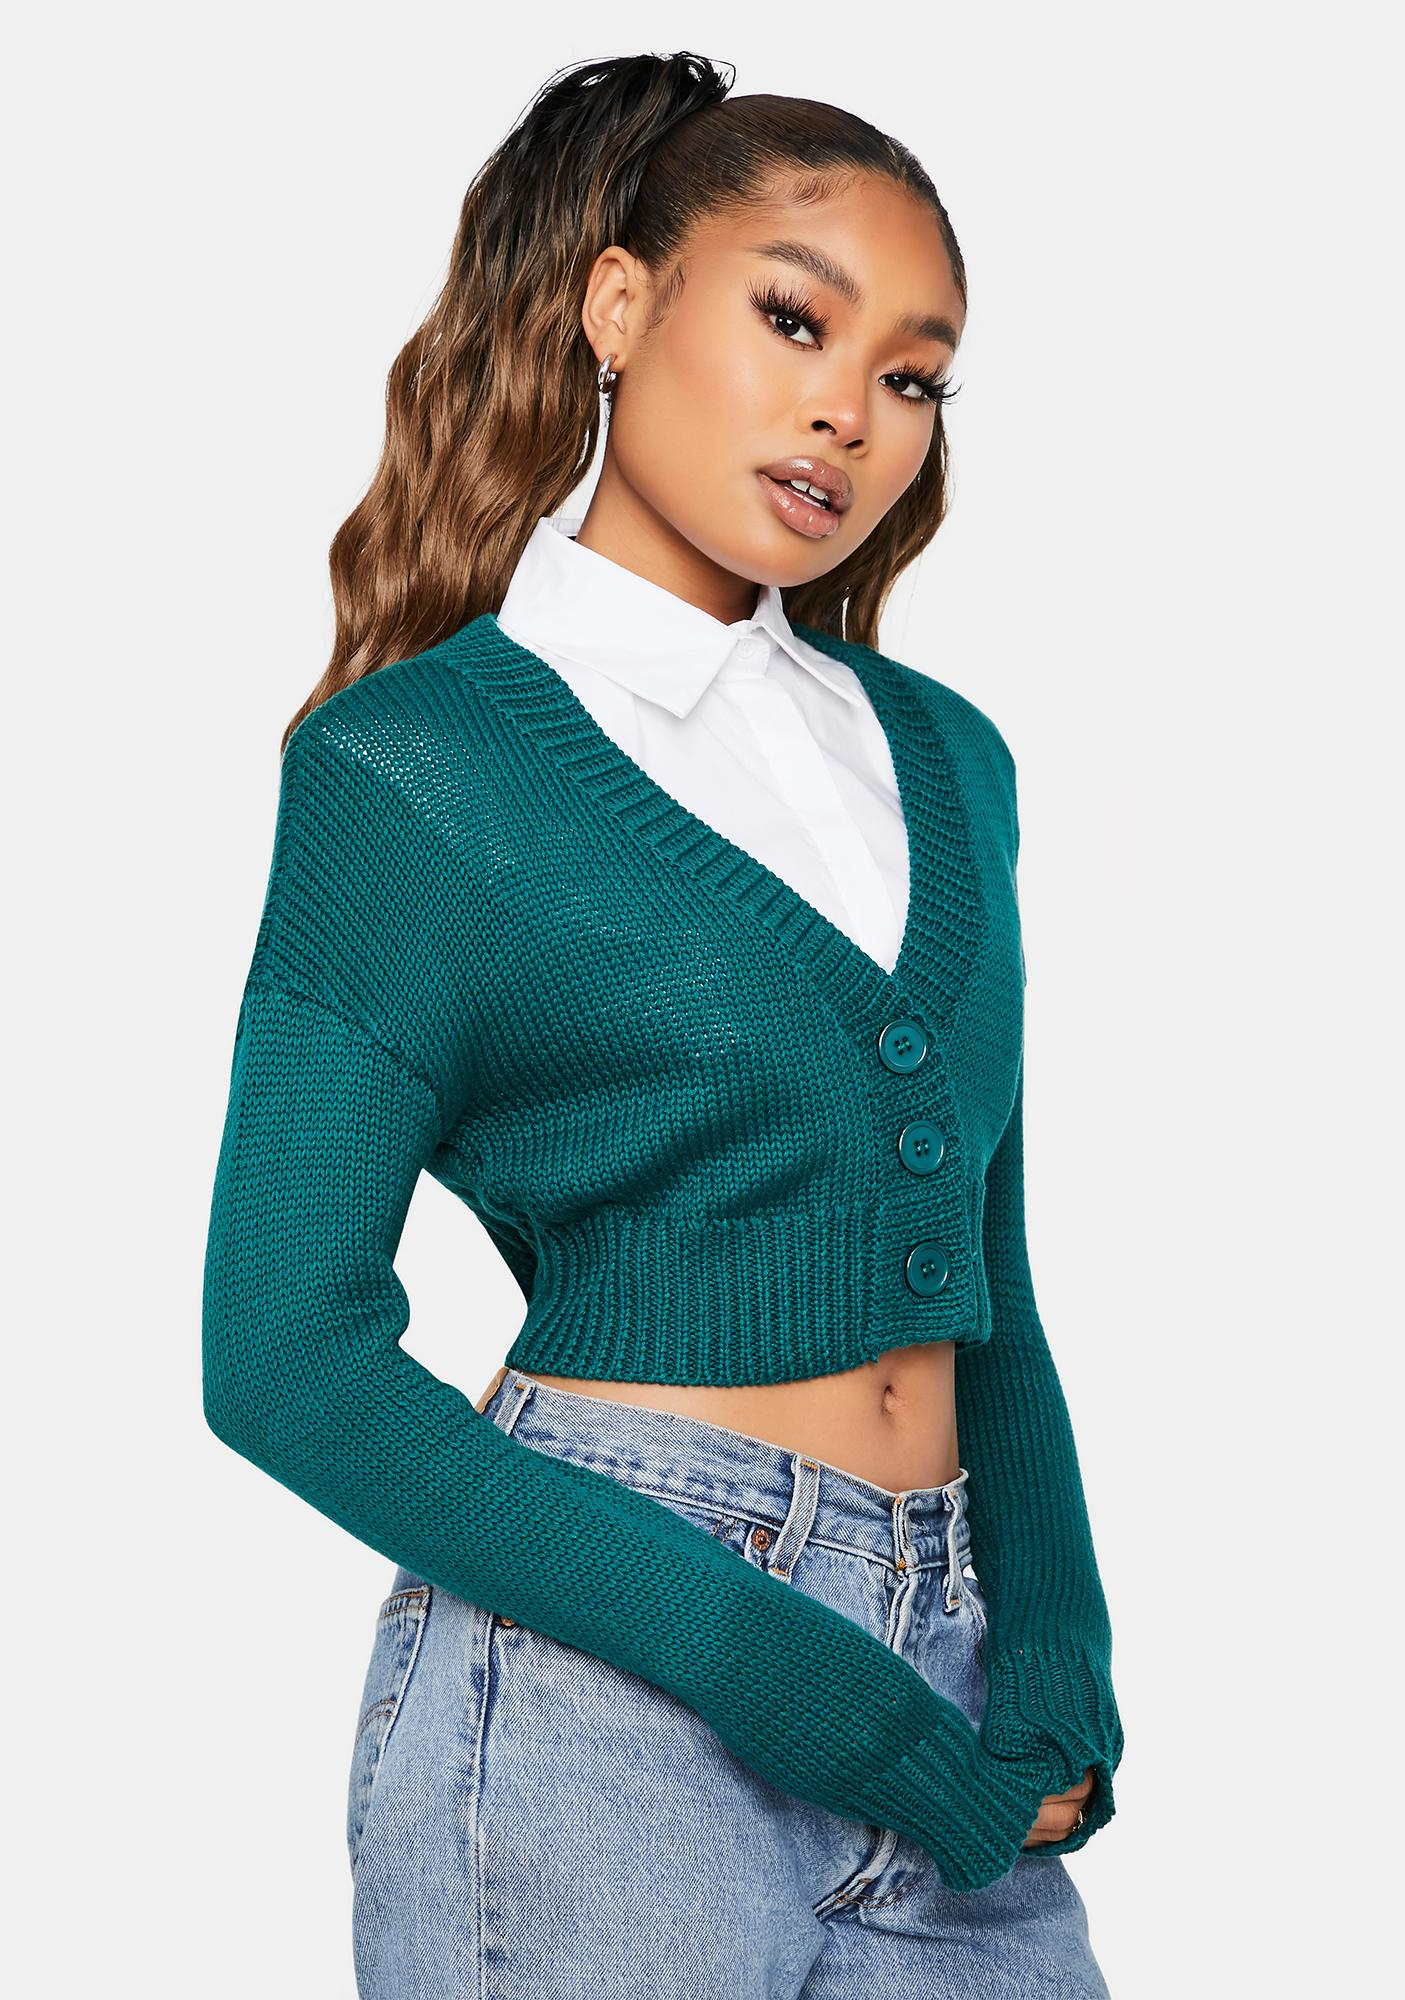 Learn My Name Cropped Cardigan